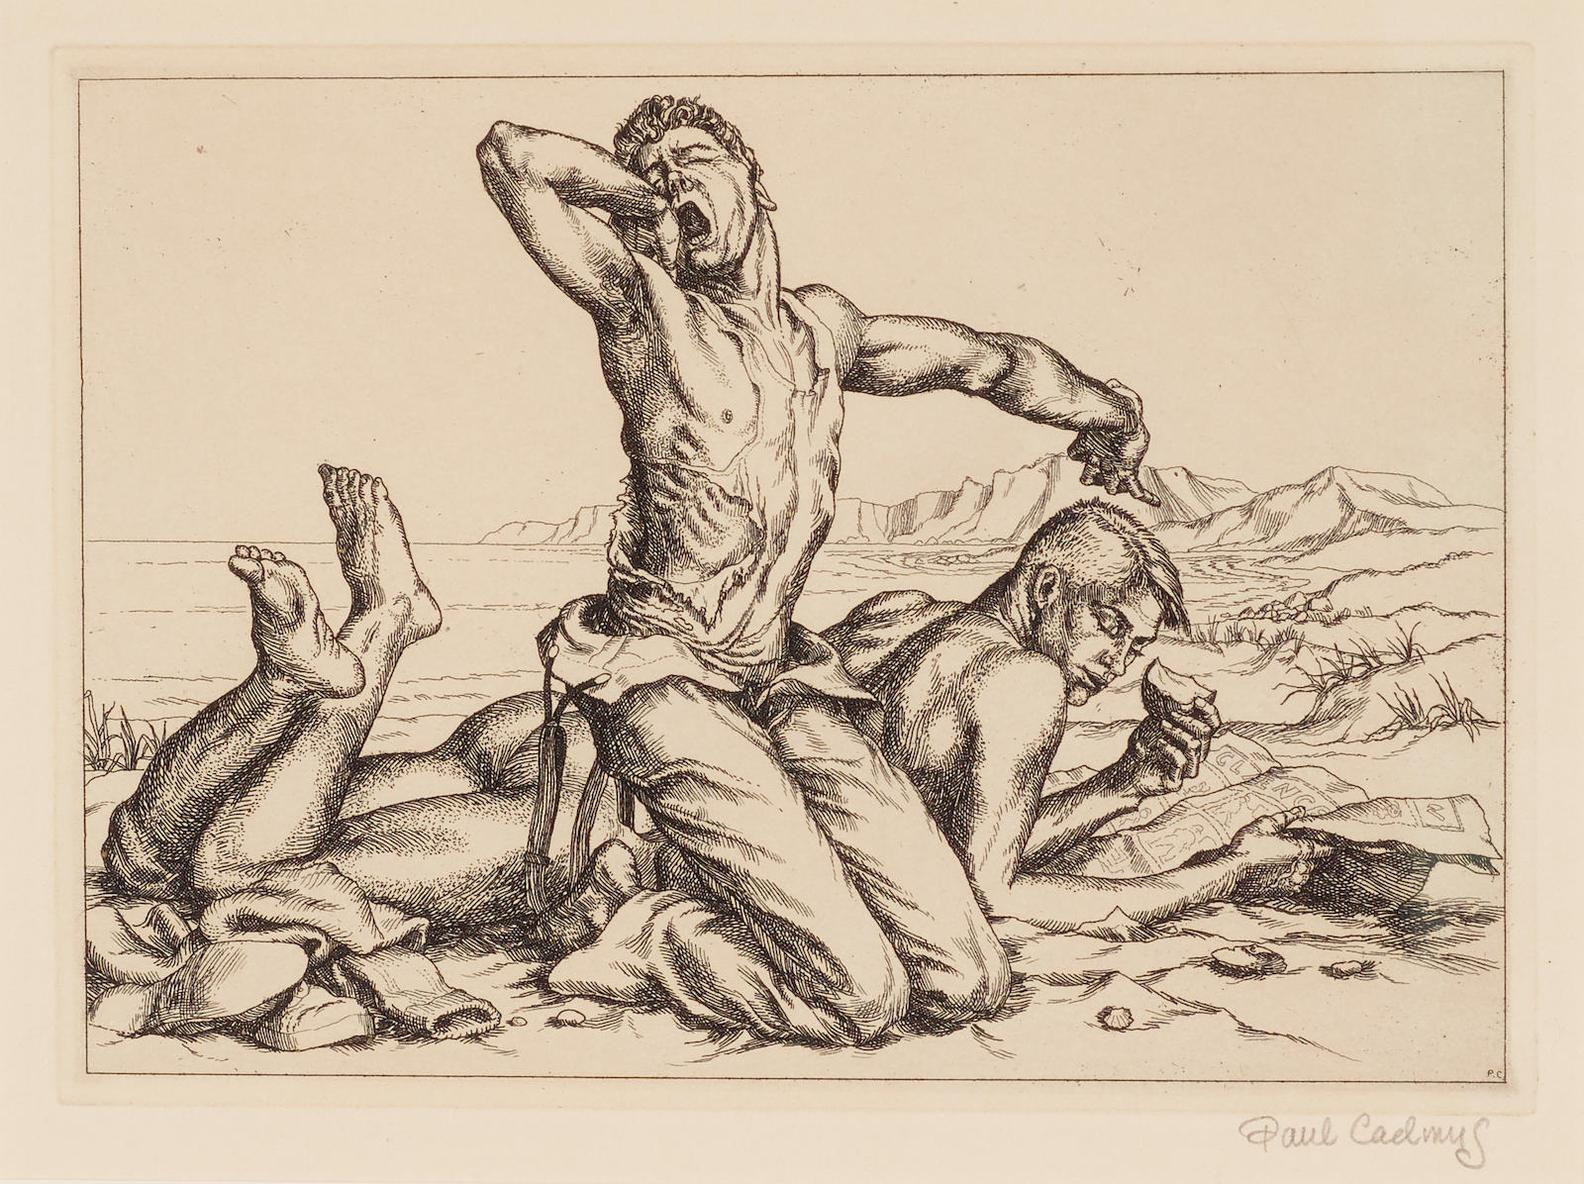 Paul Cadmus-Two Boys On A Beach #1, From Twelve Etchings-1938